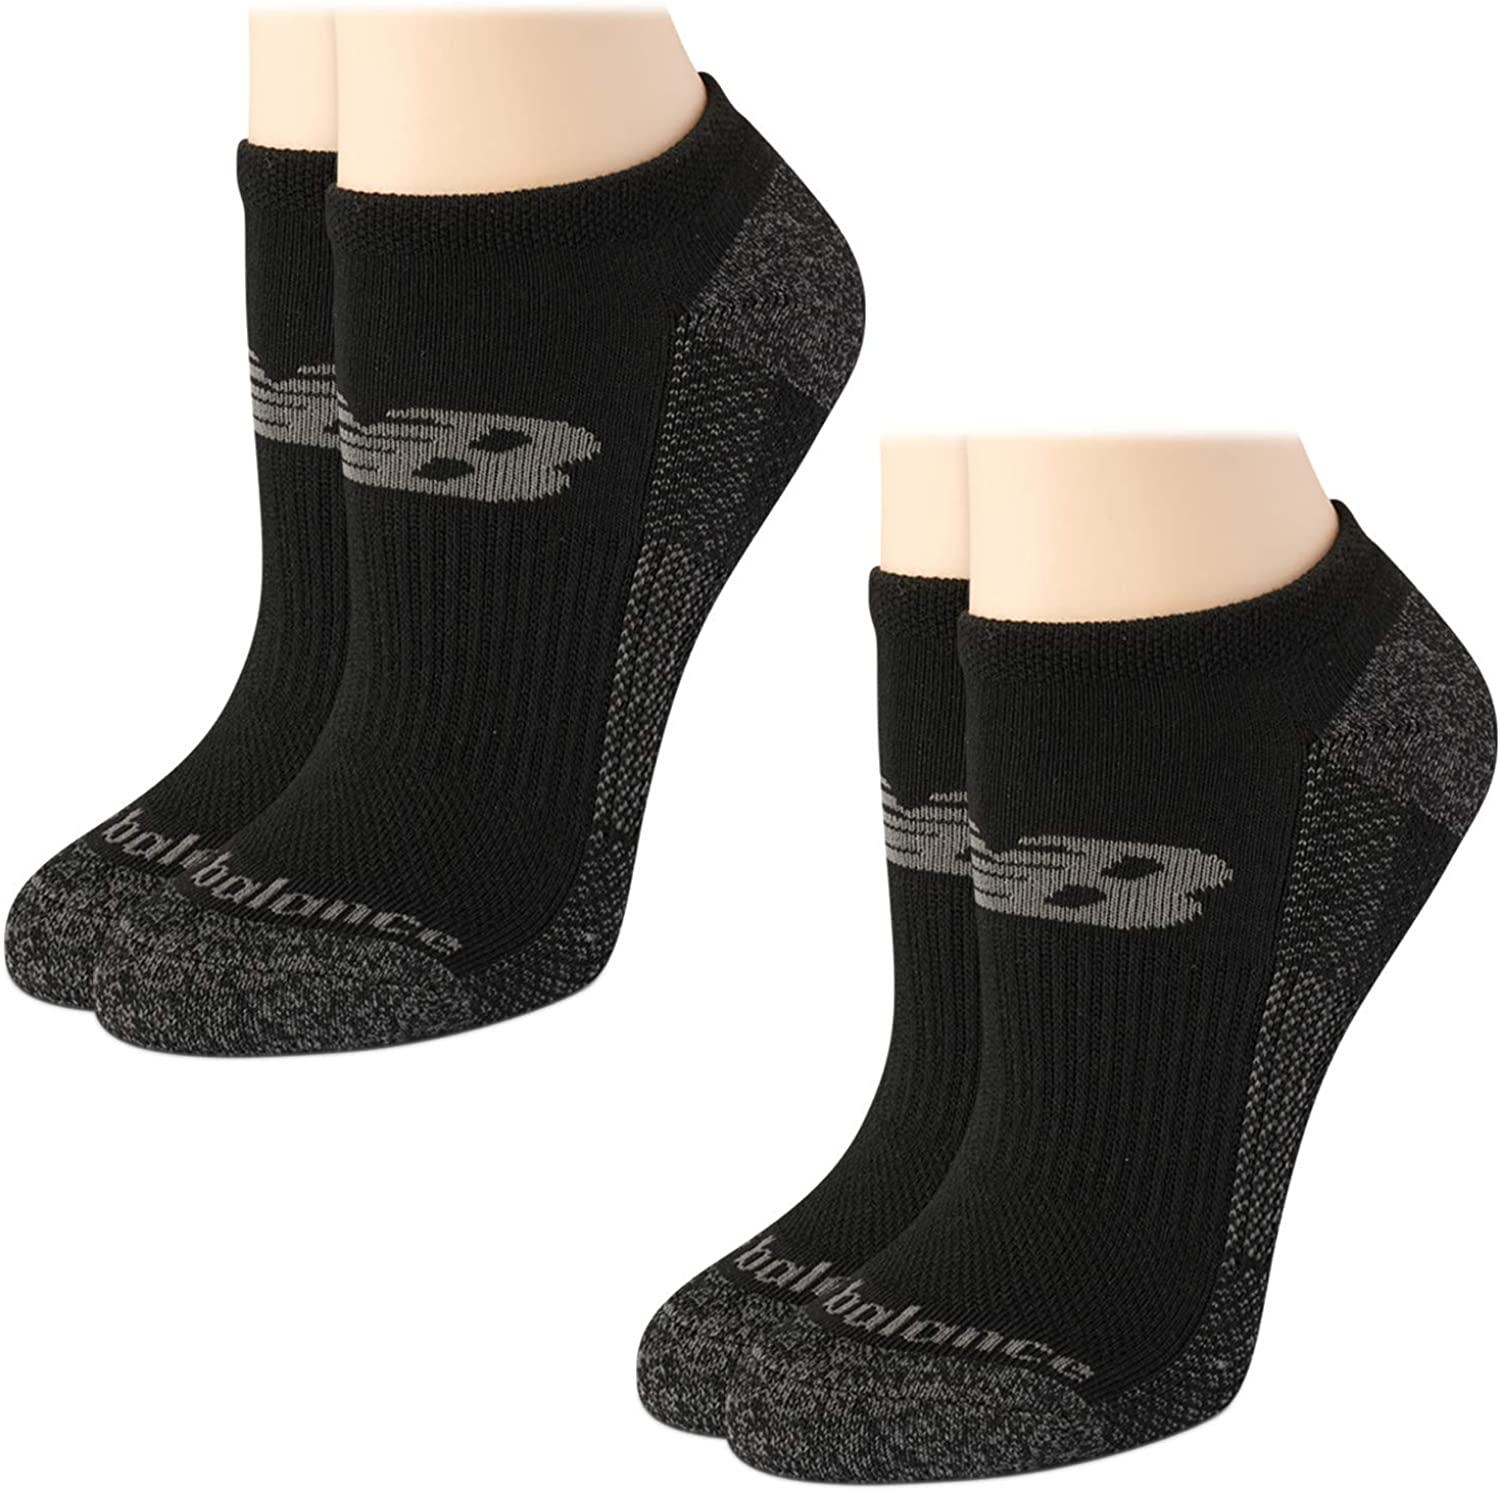 New Balance Women's Cushioned No Show Low Cut Socks with Ice Cooling Technology (2 Pack)